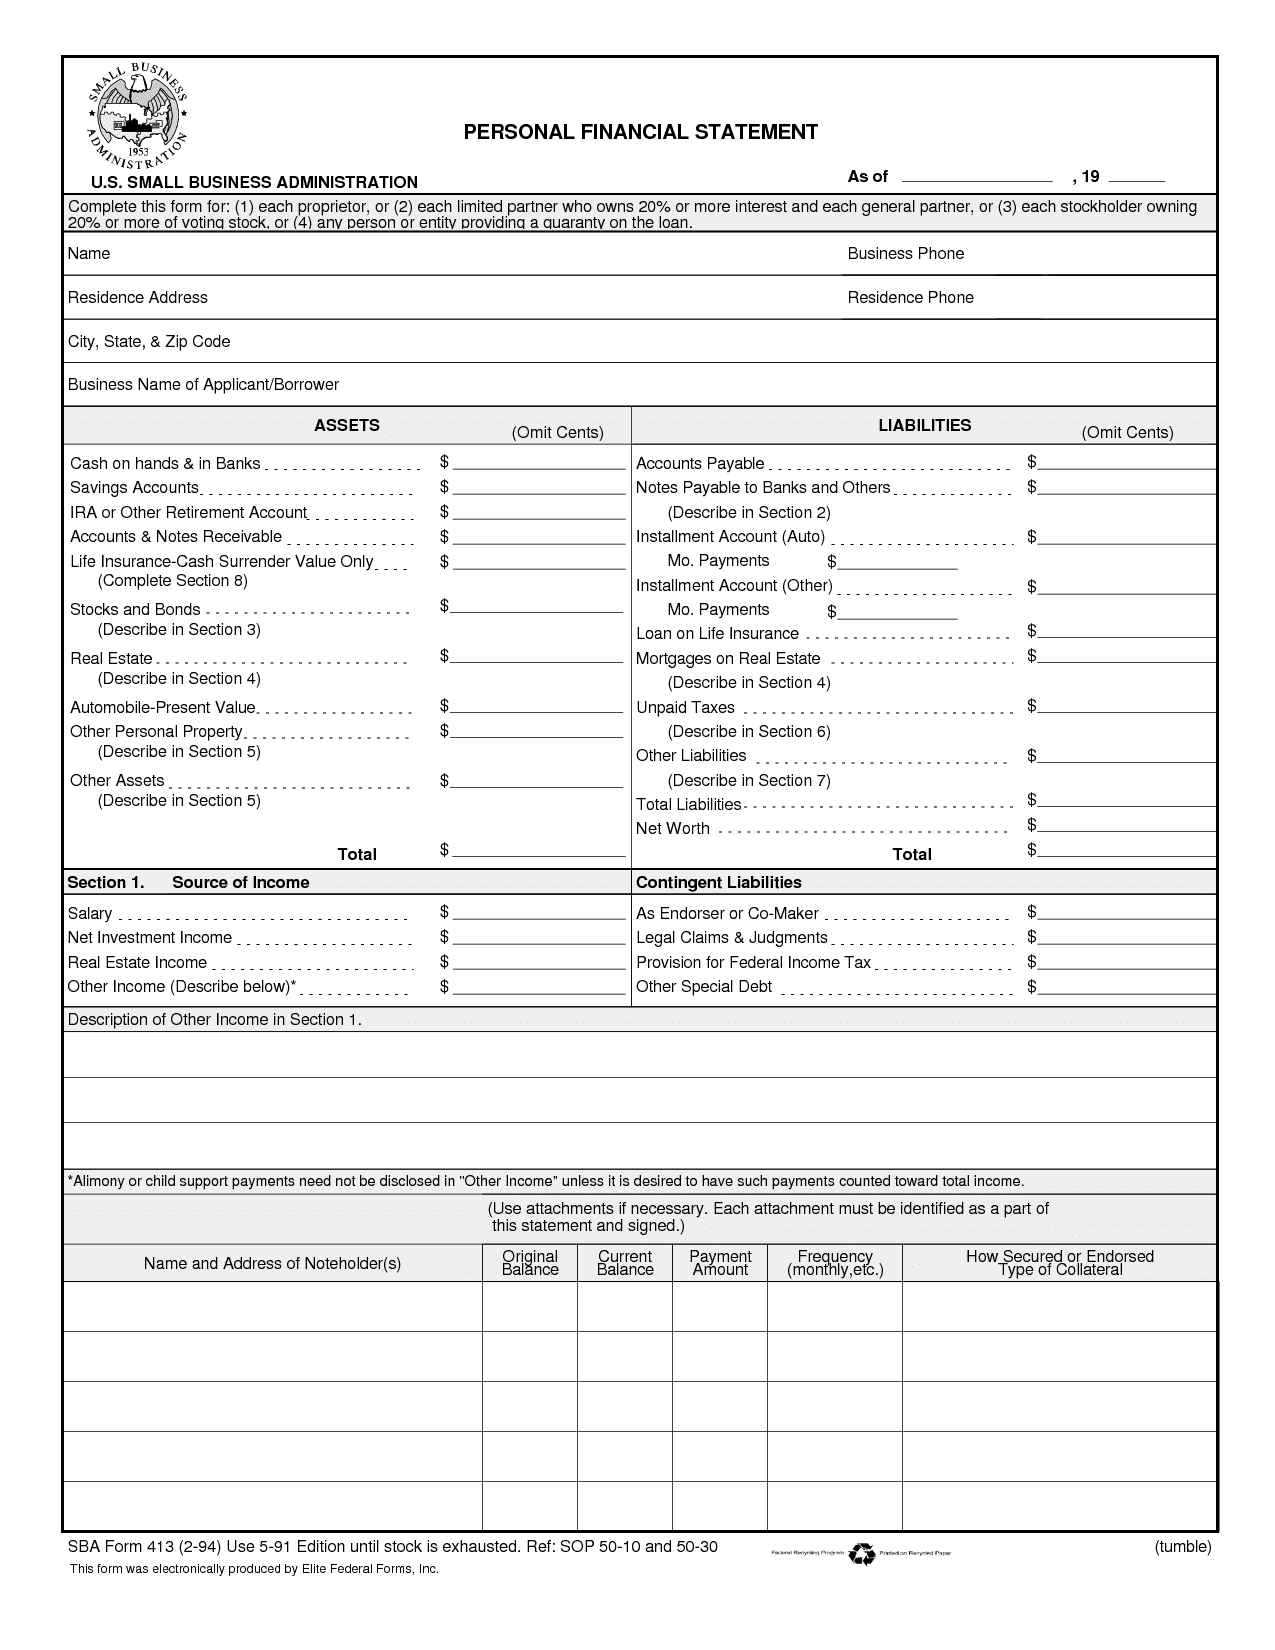 Corporate Financial Statement Form And Financial Statement Template Real Estate